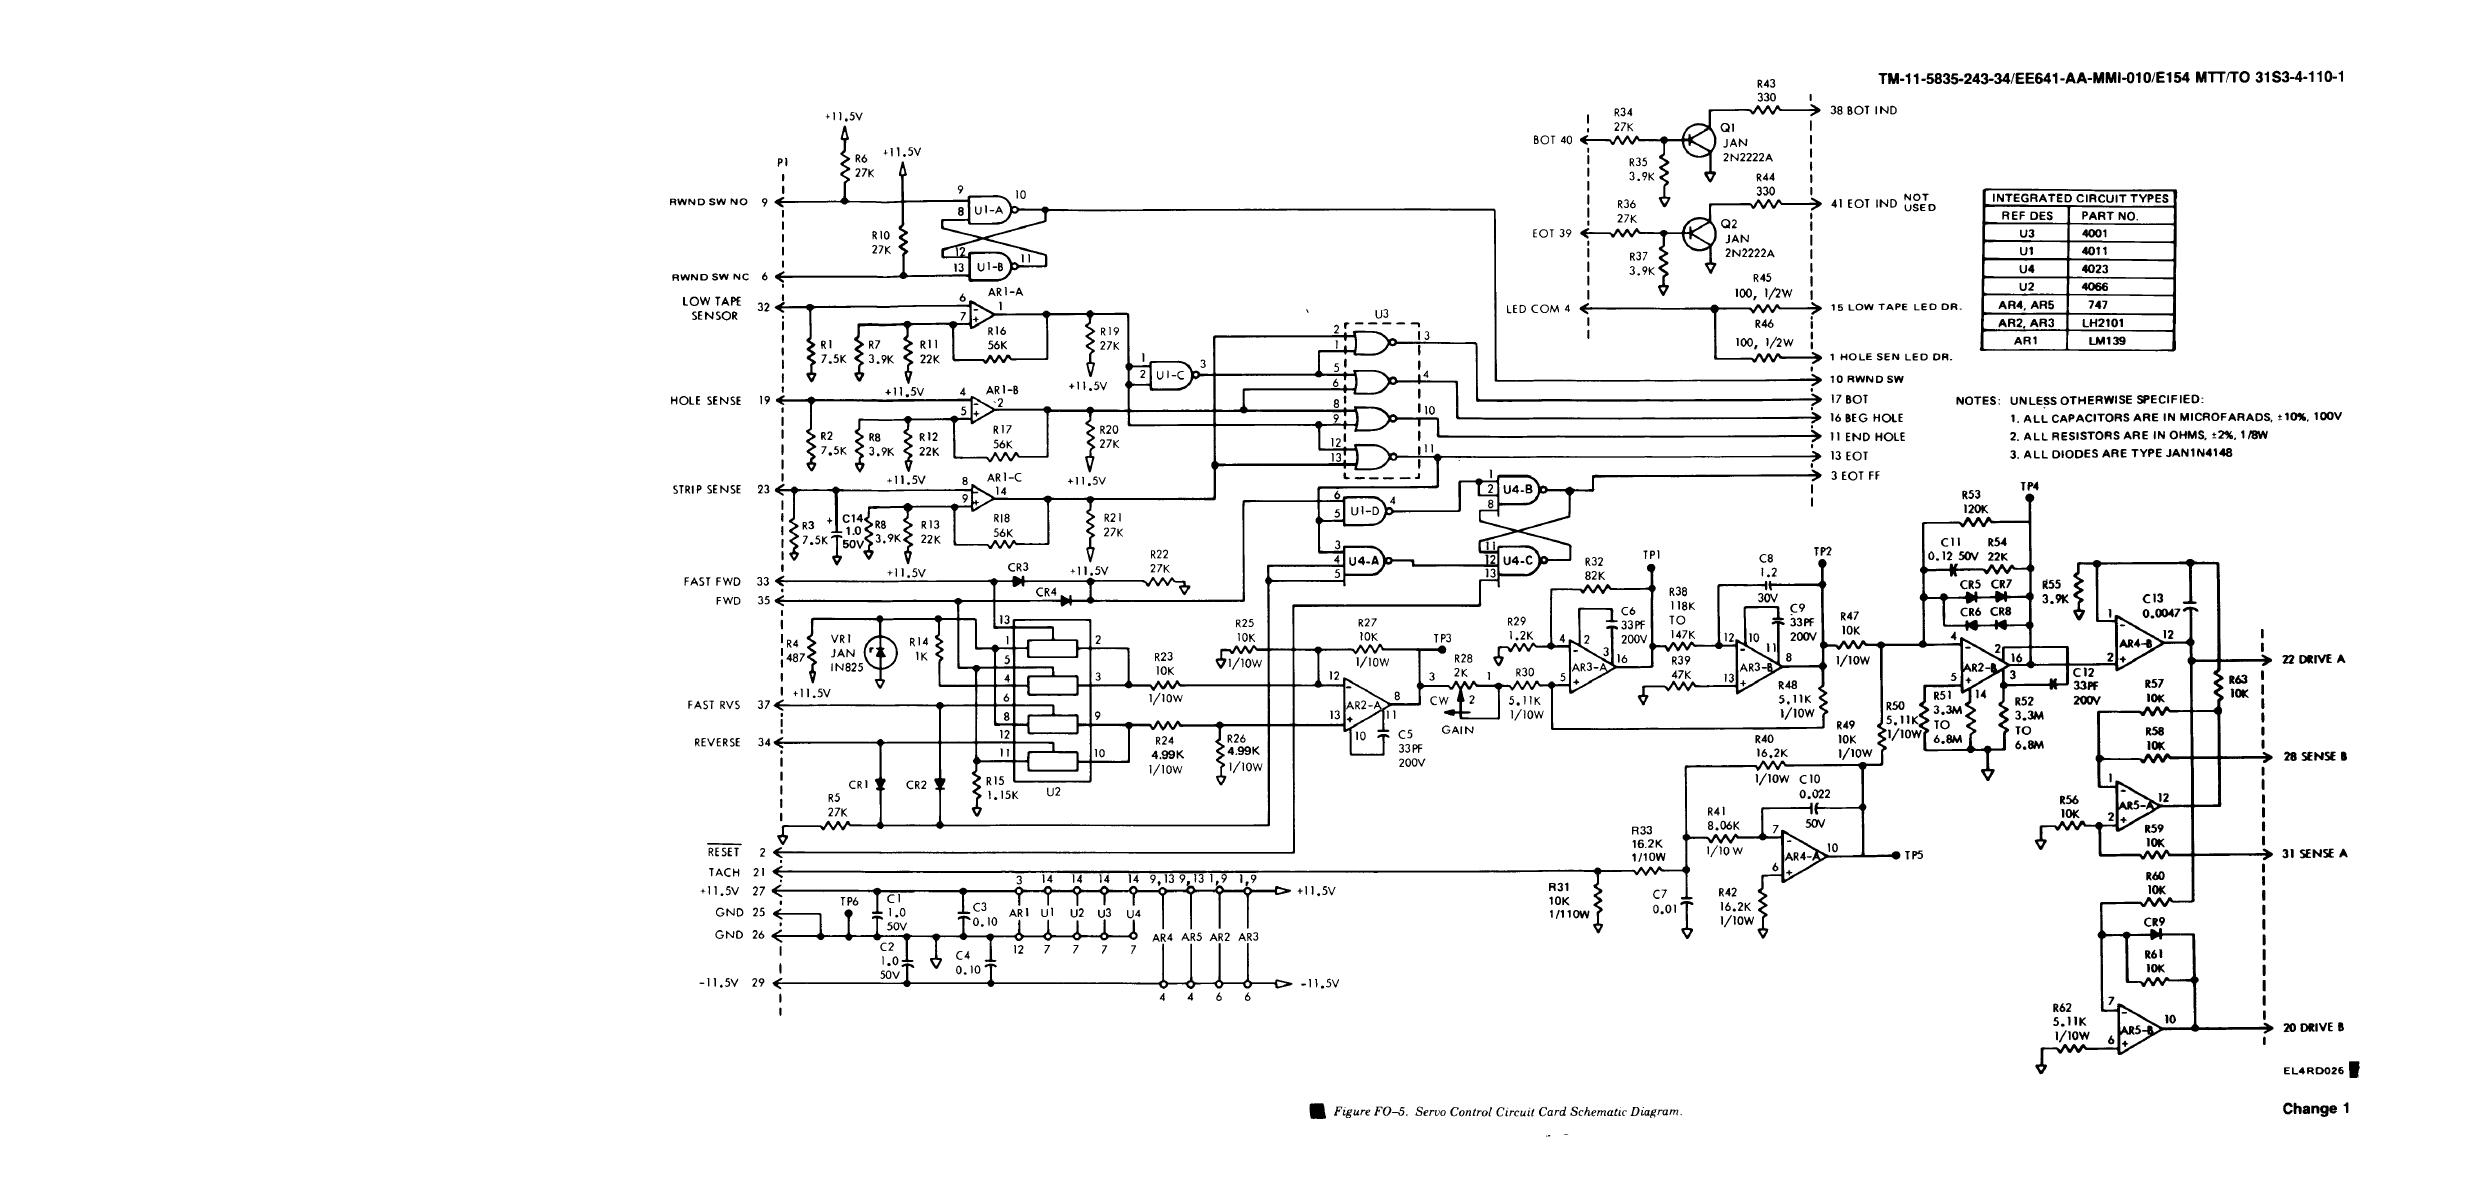 bose ps3 2 1 wiring diagram